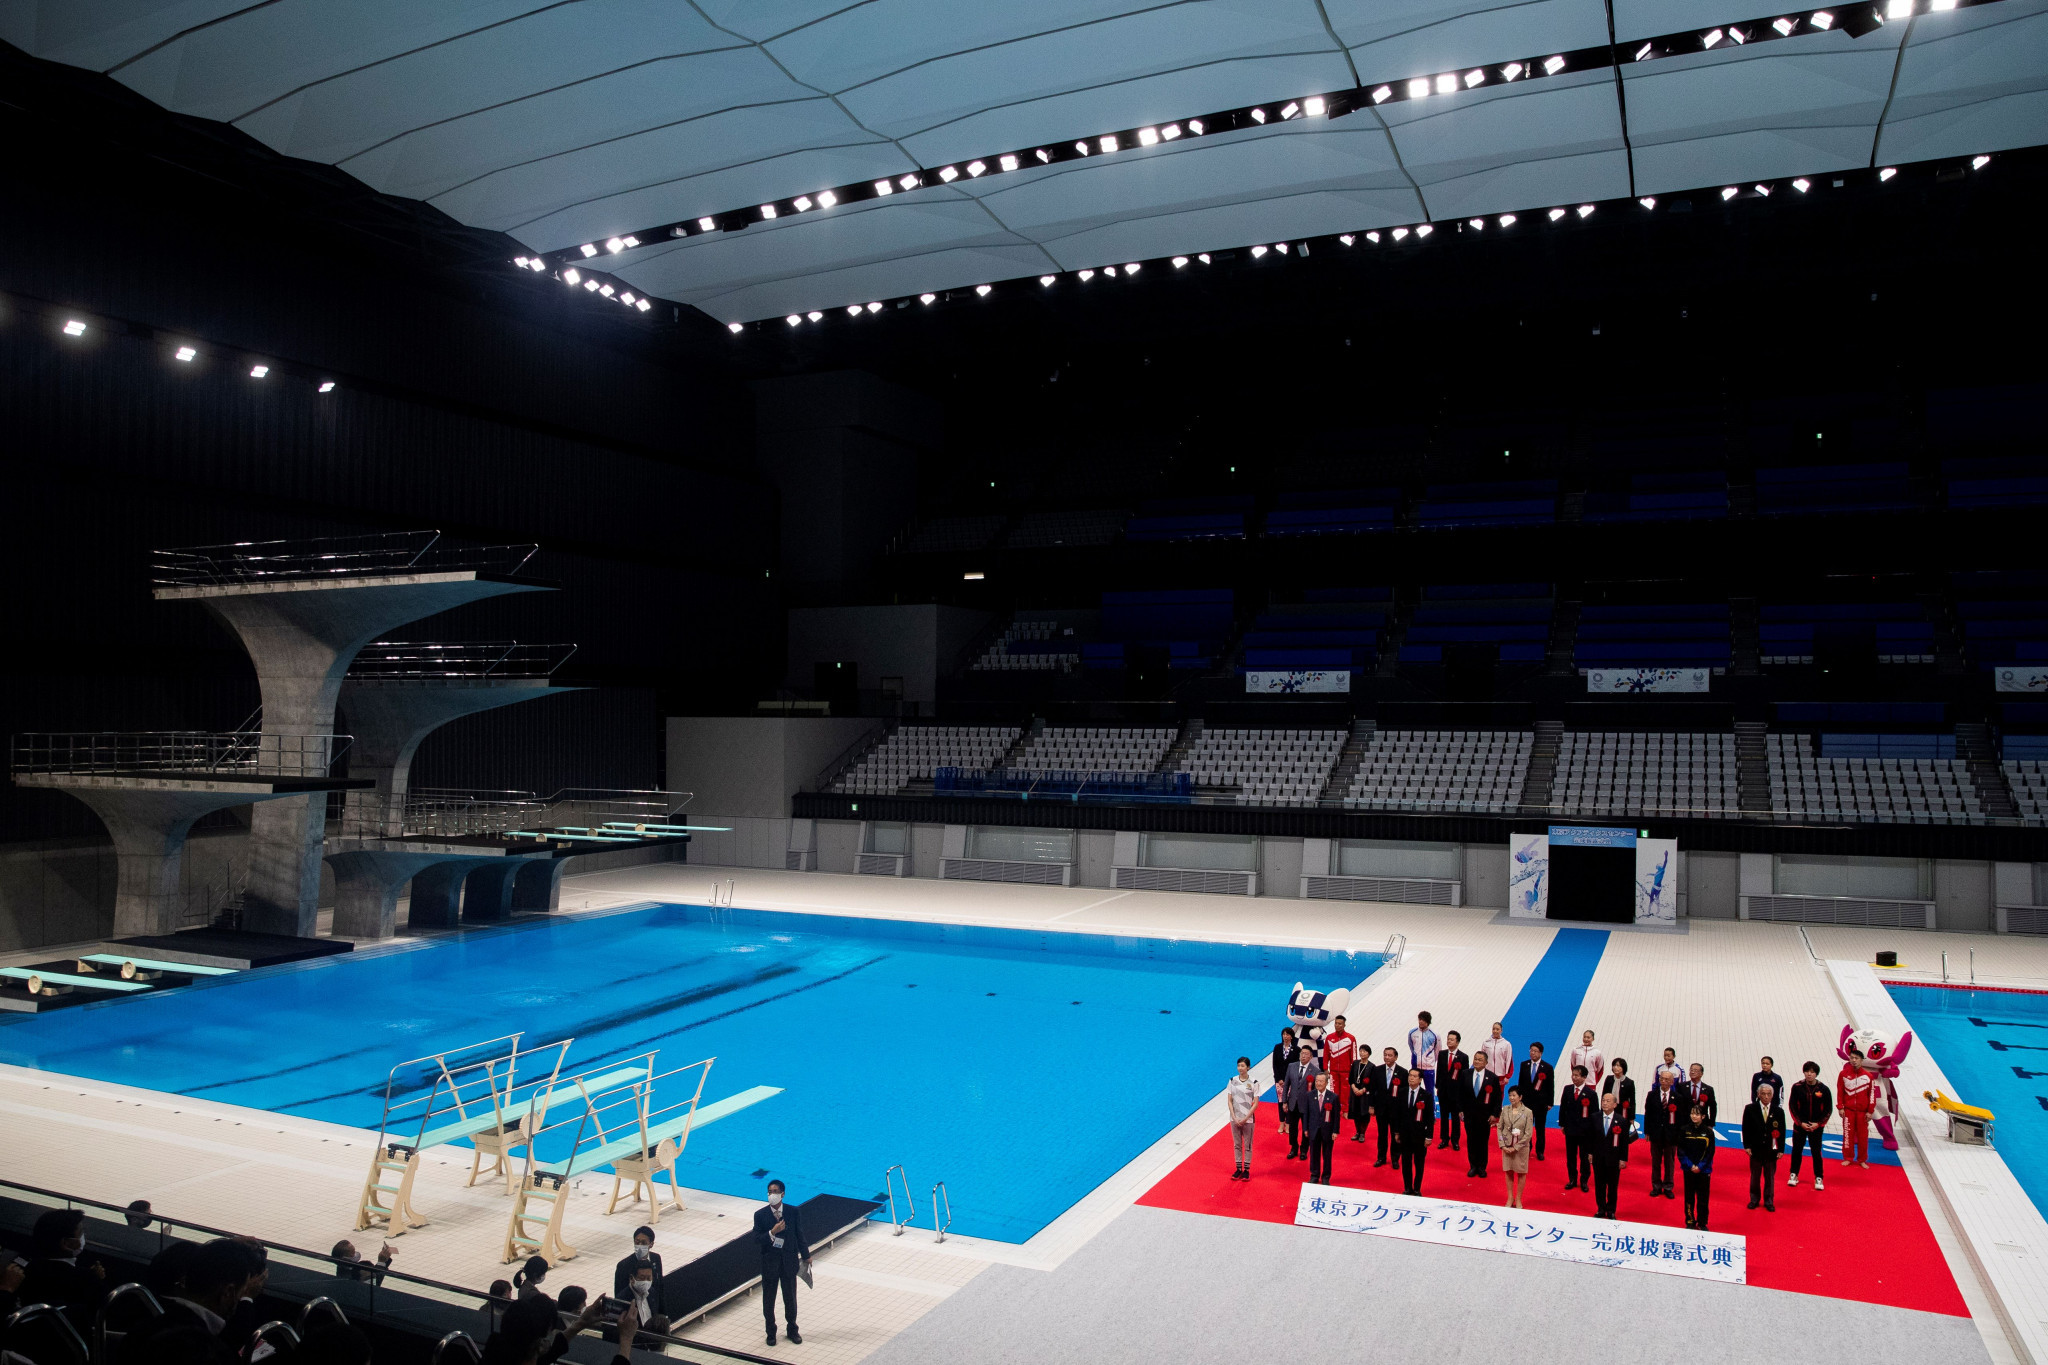 A grand Opening Ceremony took place at the Aquatics Centre for the Tokyo 2020 Olympic and Paralympic Games ©Getty Images